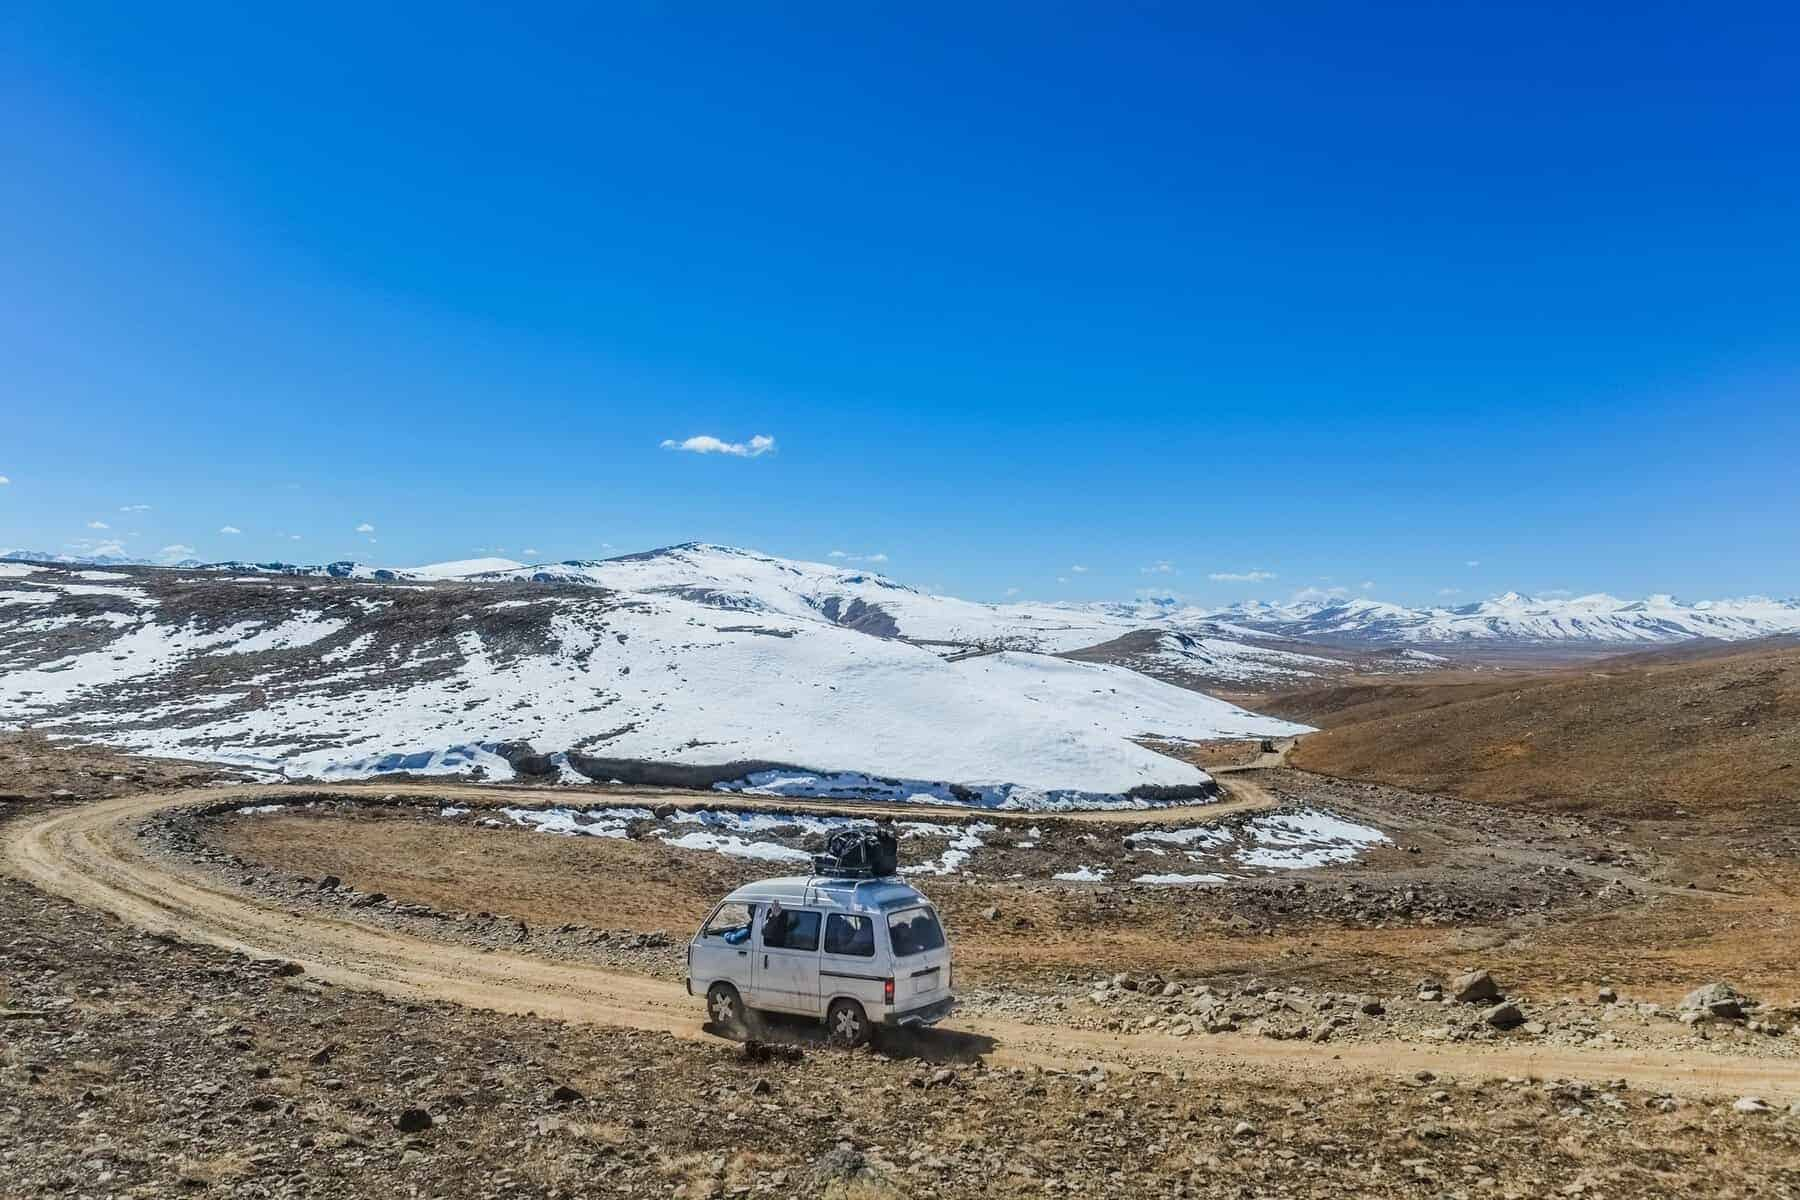 A white van with luggage on the roof running along the unpaved road. Deosai plains, Pakistan.